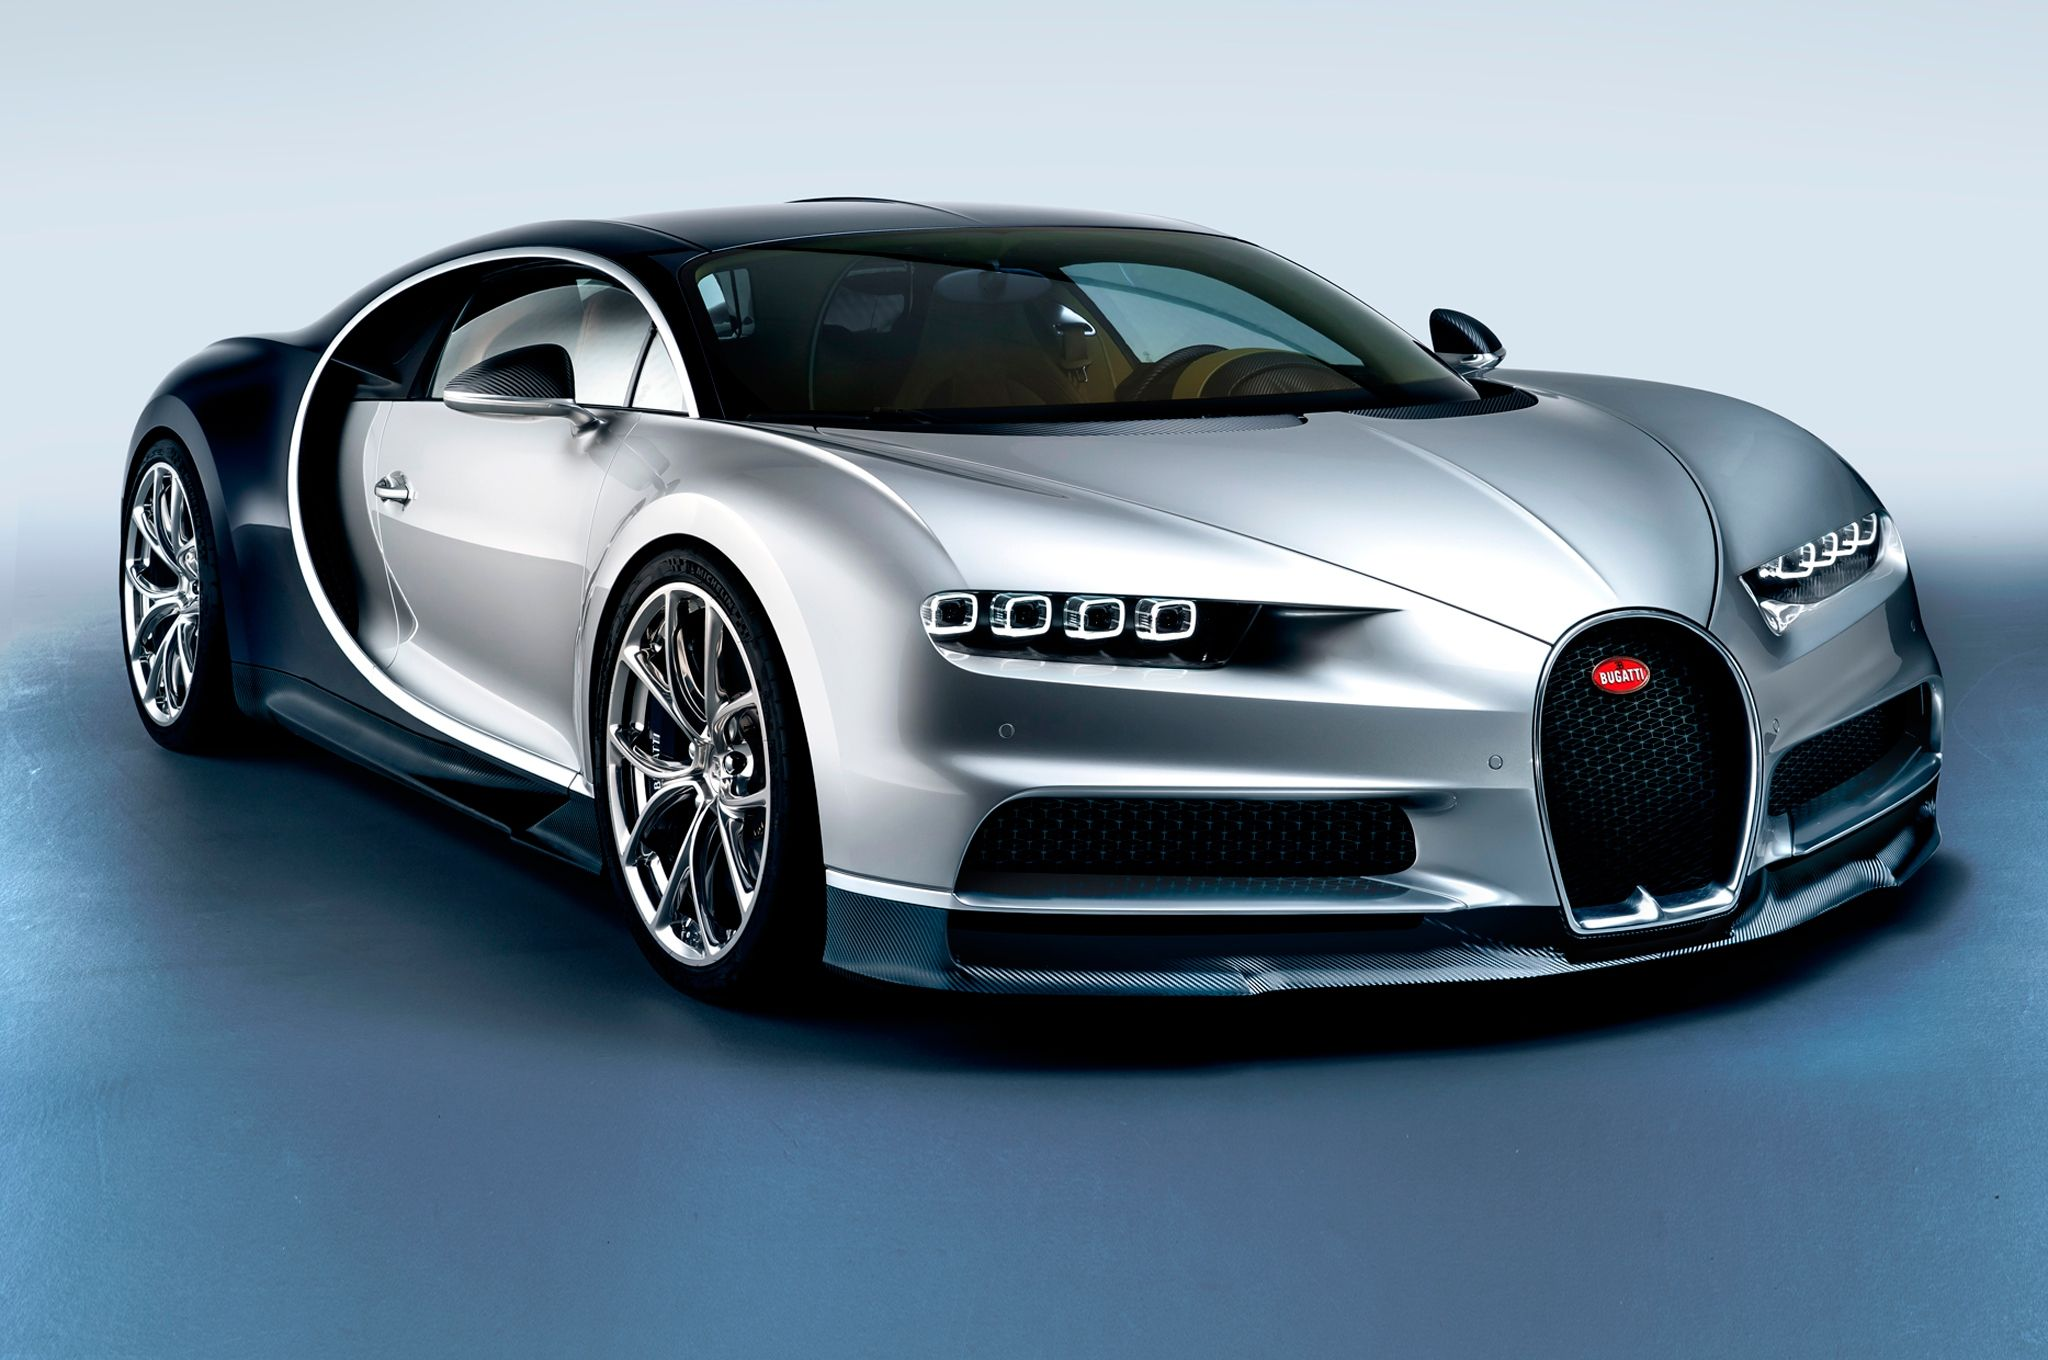 9ee4b32ae59a20574c1ee473a90658d4 Exciting Bugatti Veyron Zero to Sixty Cars Trend